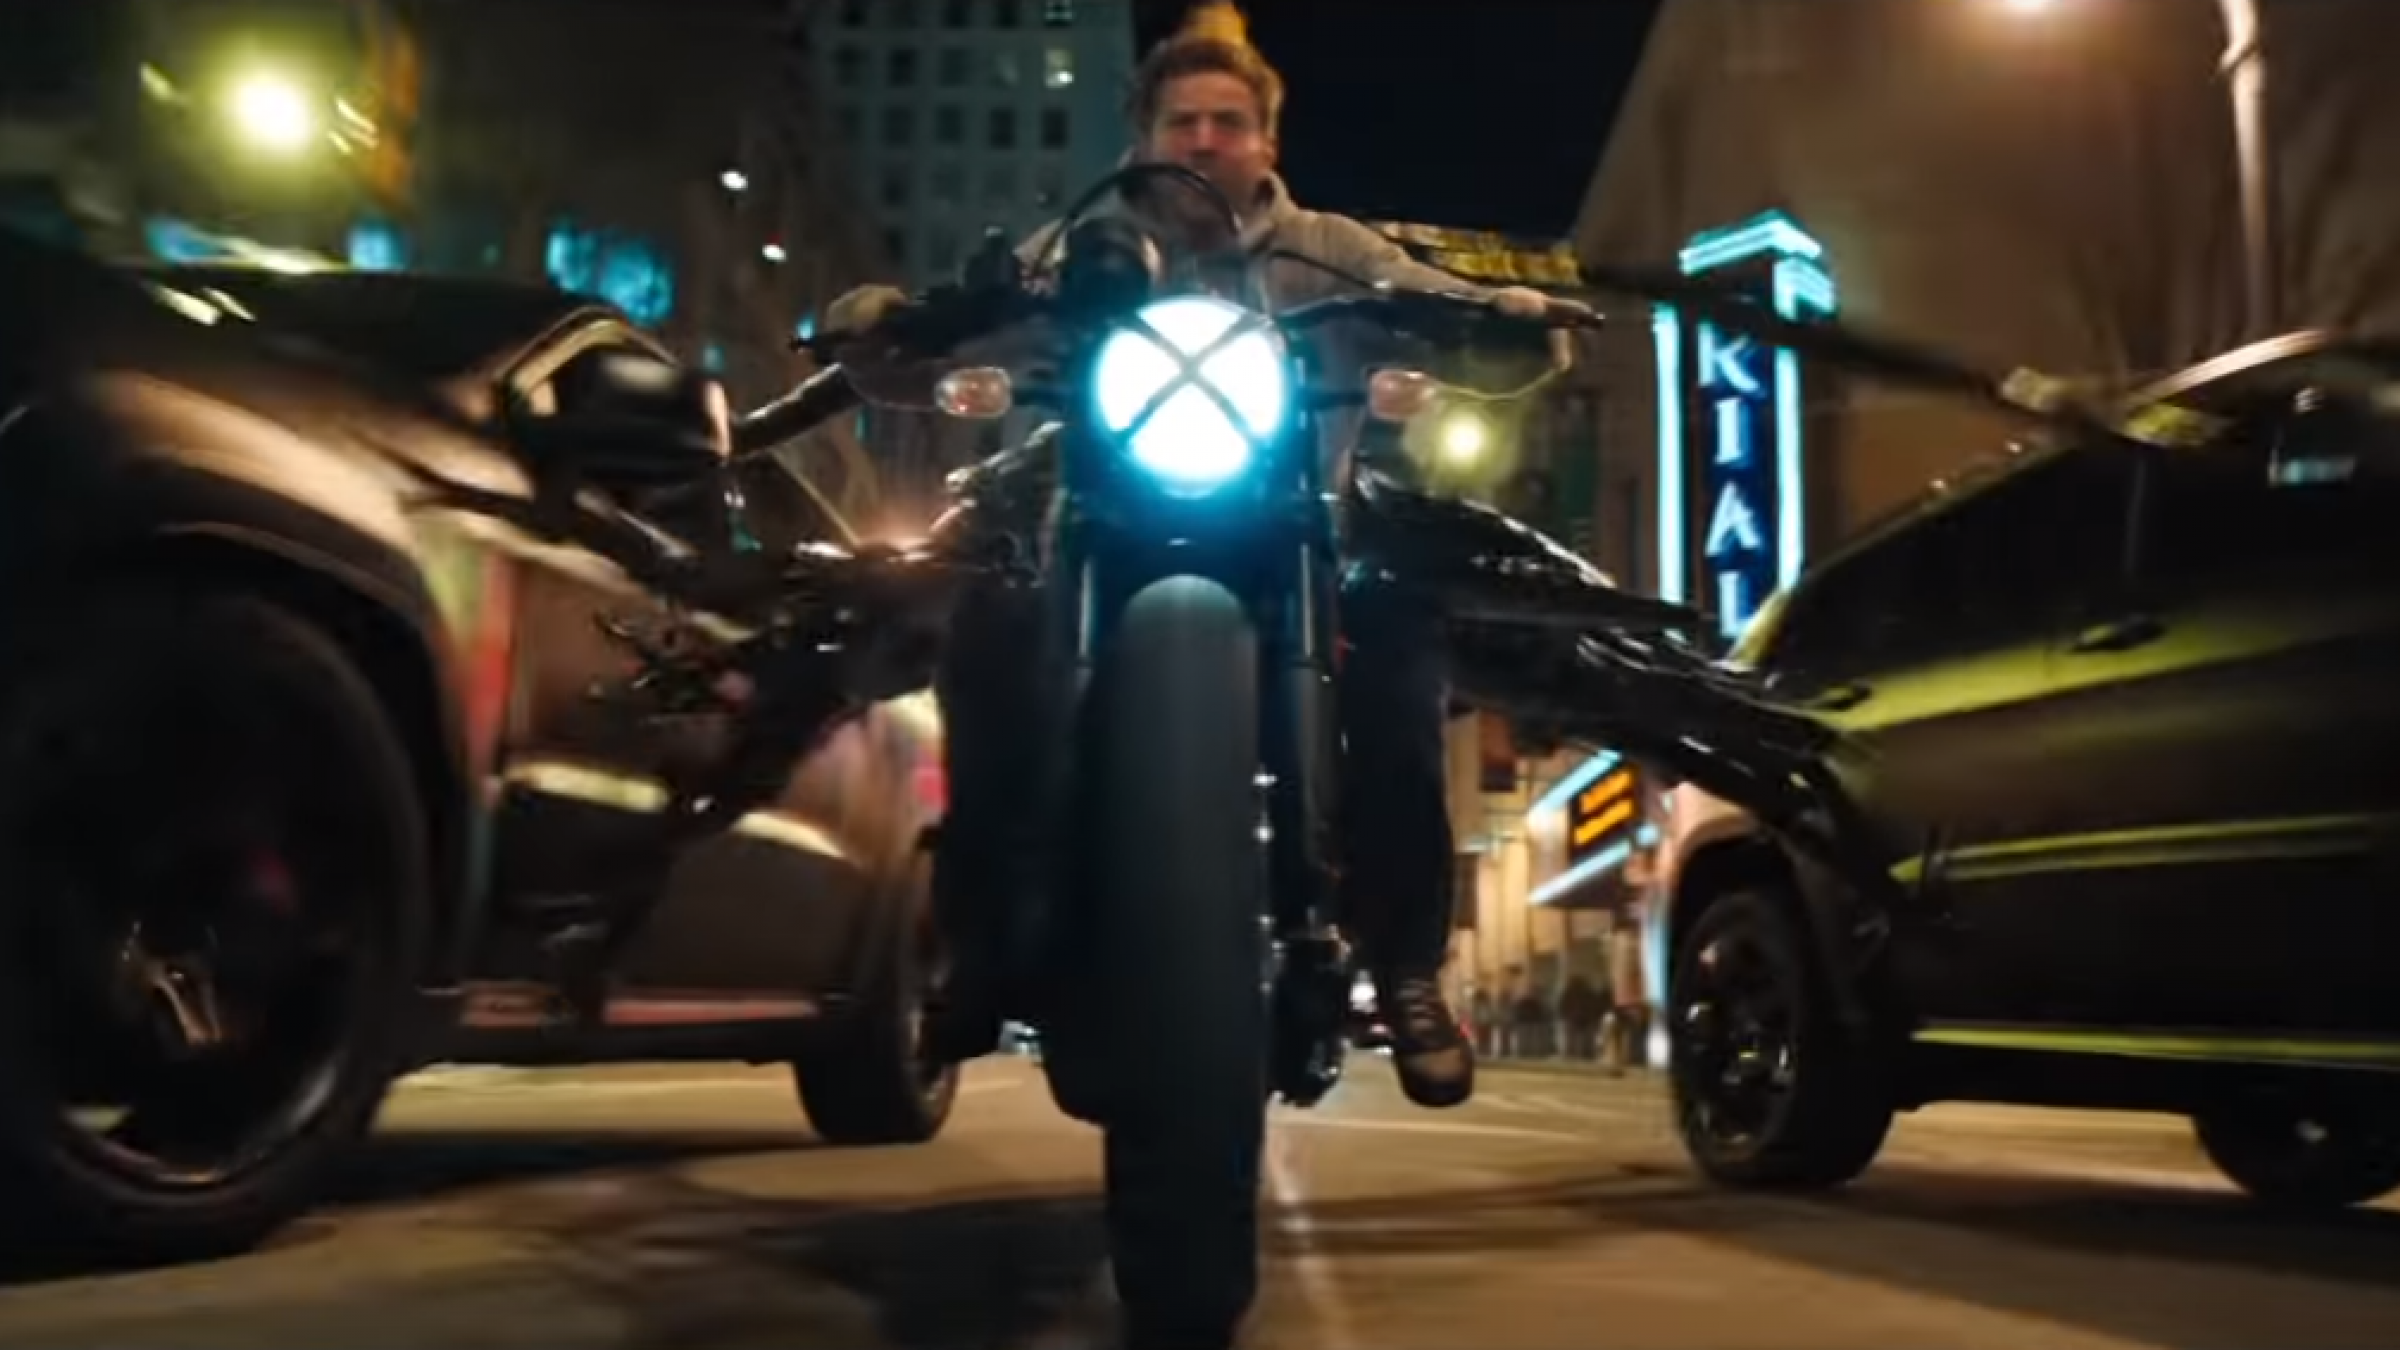 How 'Venom' Pulled Off that Motorcycle Chase Scene